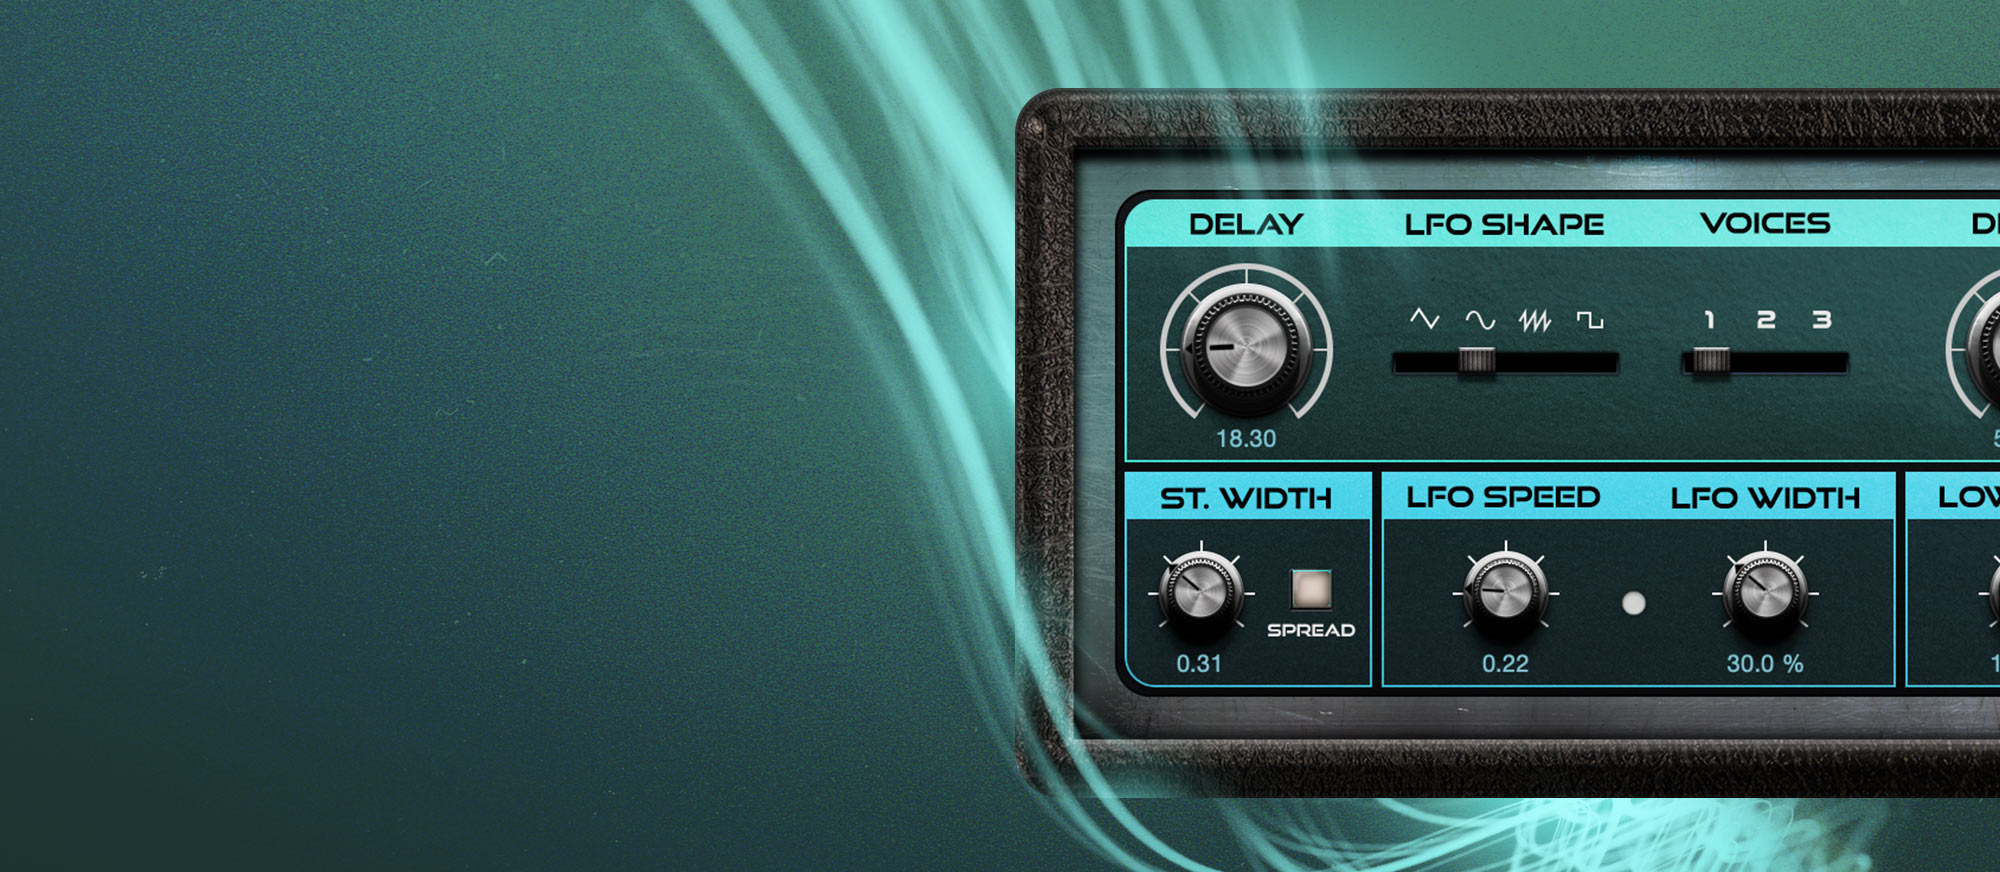 Chorus user interface surrounded by a light swirl